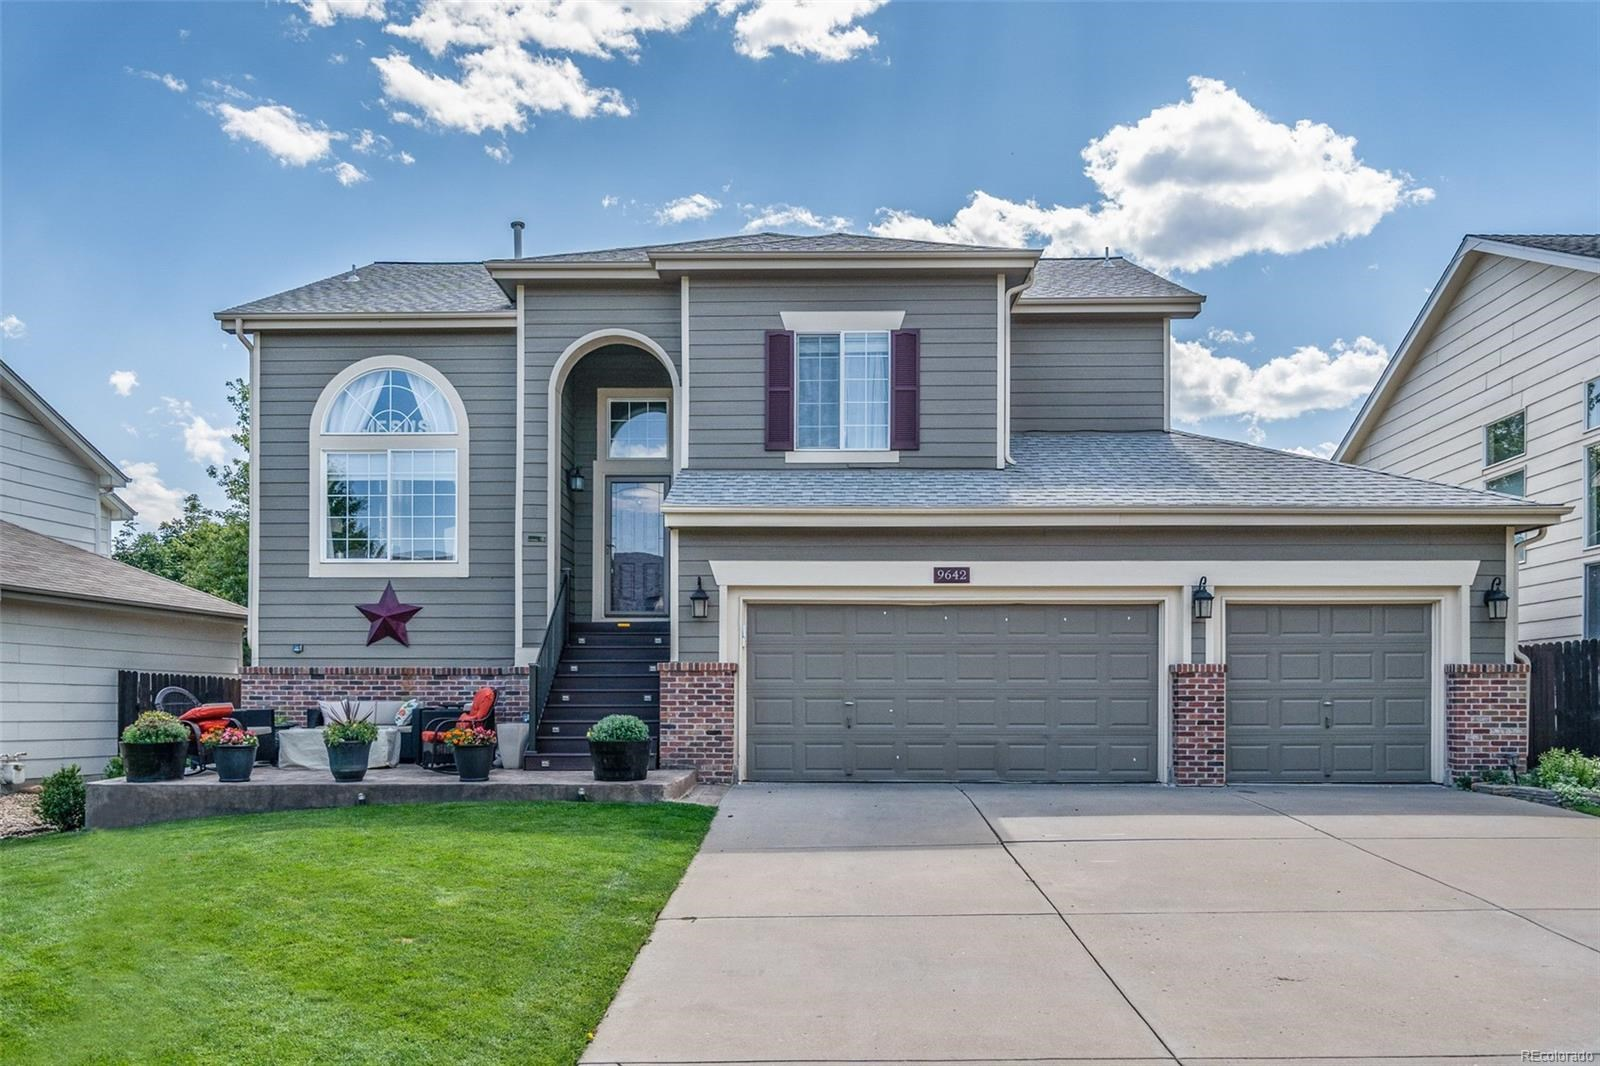 MLS# 8197337 - 1 - 9642 W Unser Avenue, Littleton, CO 80128